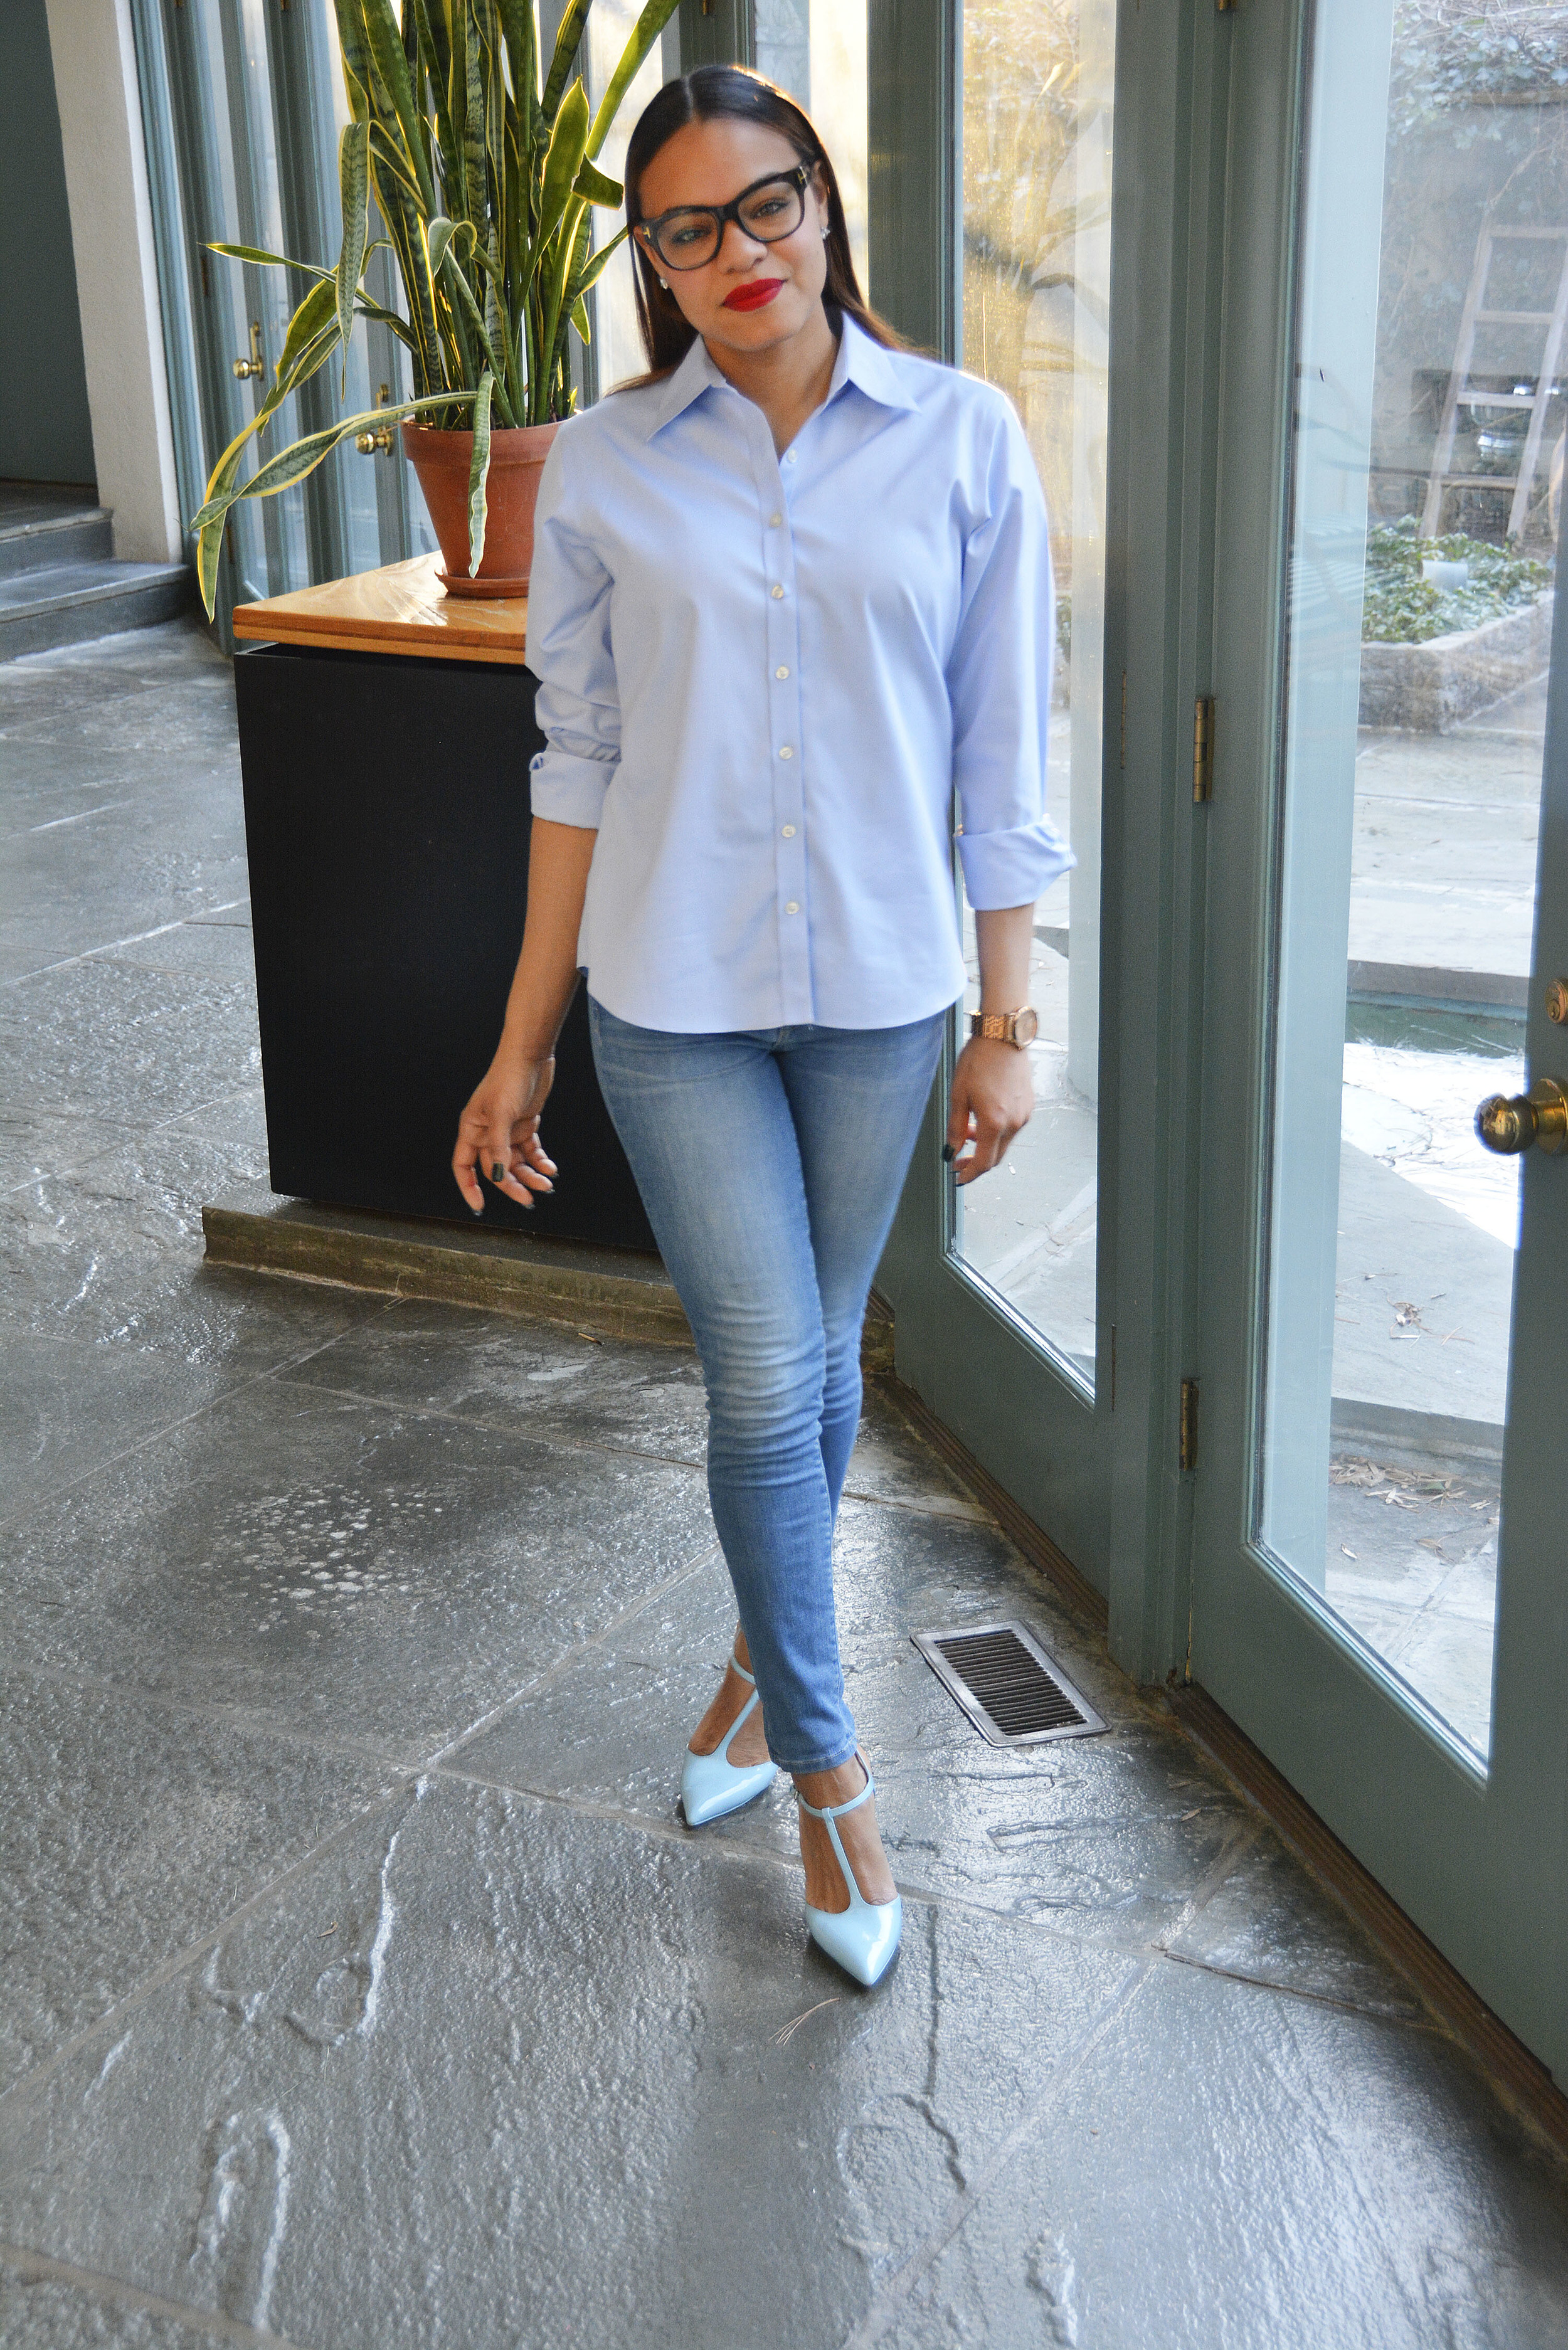 wearing: Zara shoes, Rich & Skinny jeans, Land's End top, Tom Ford eyeglasses, Burberry watch